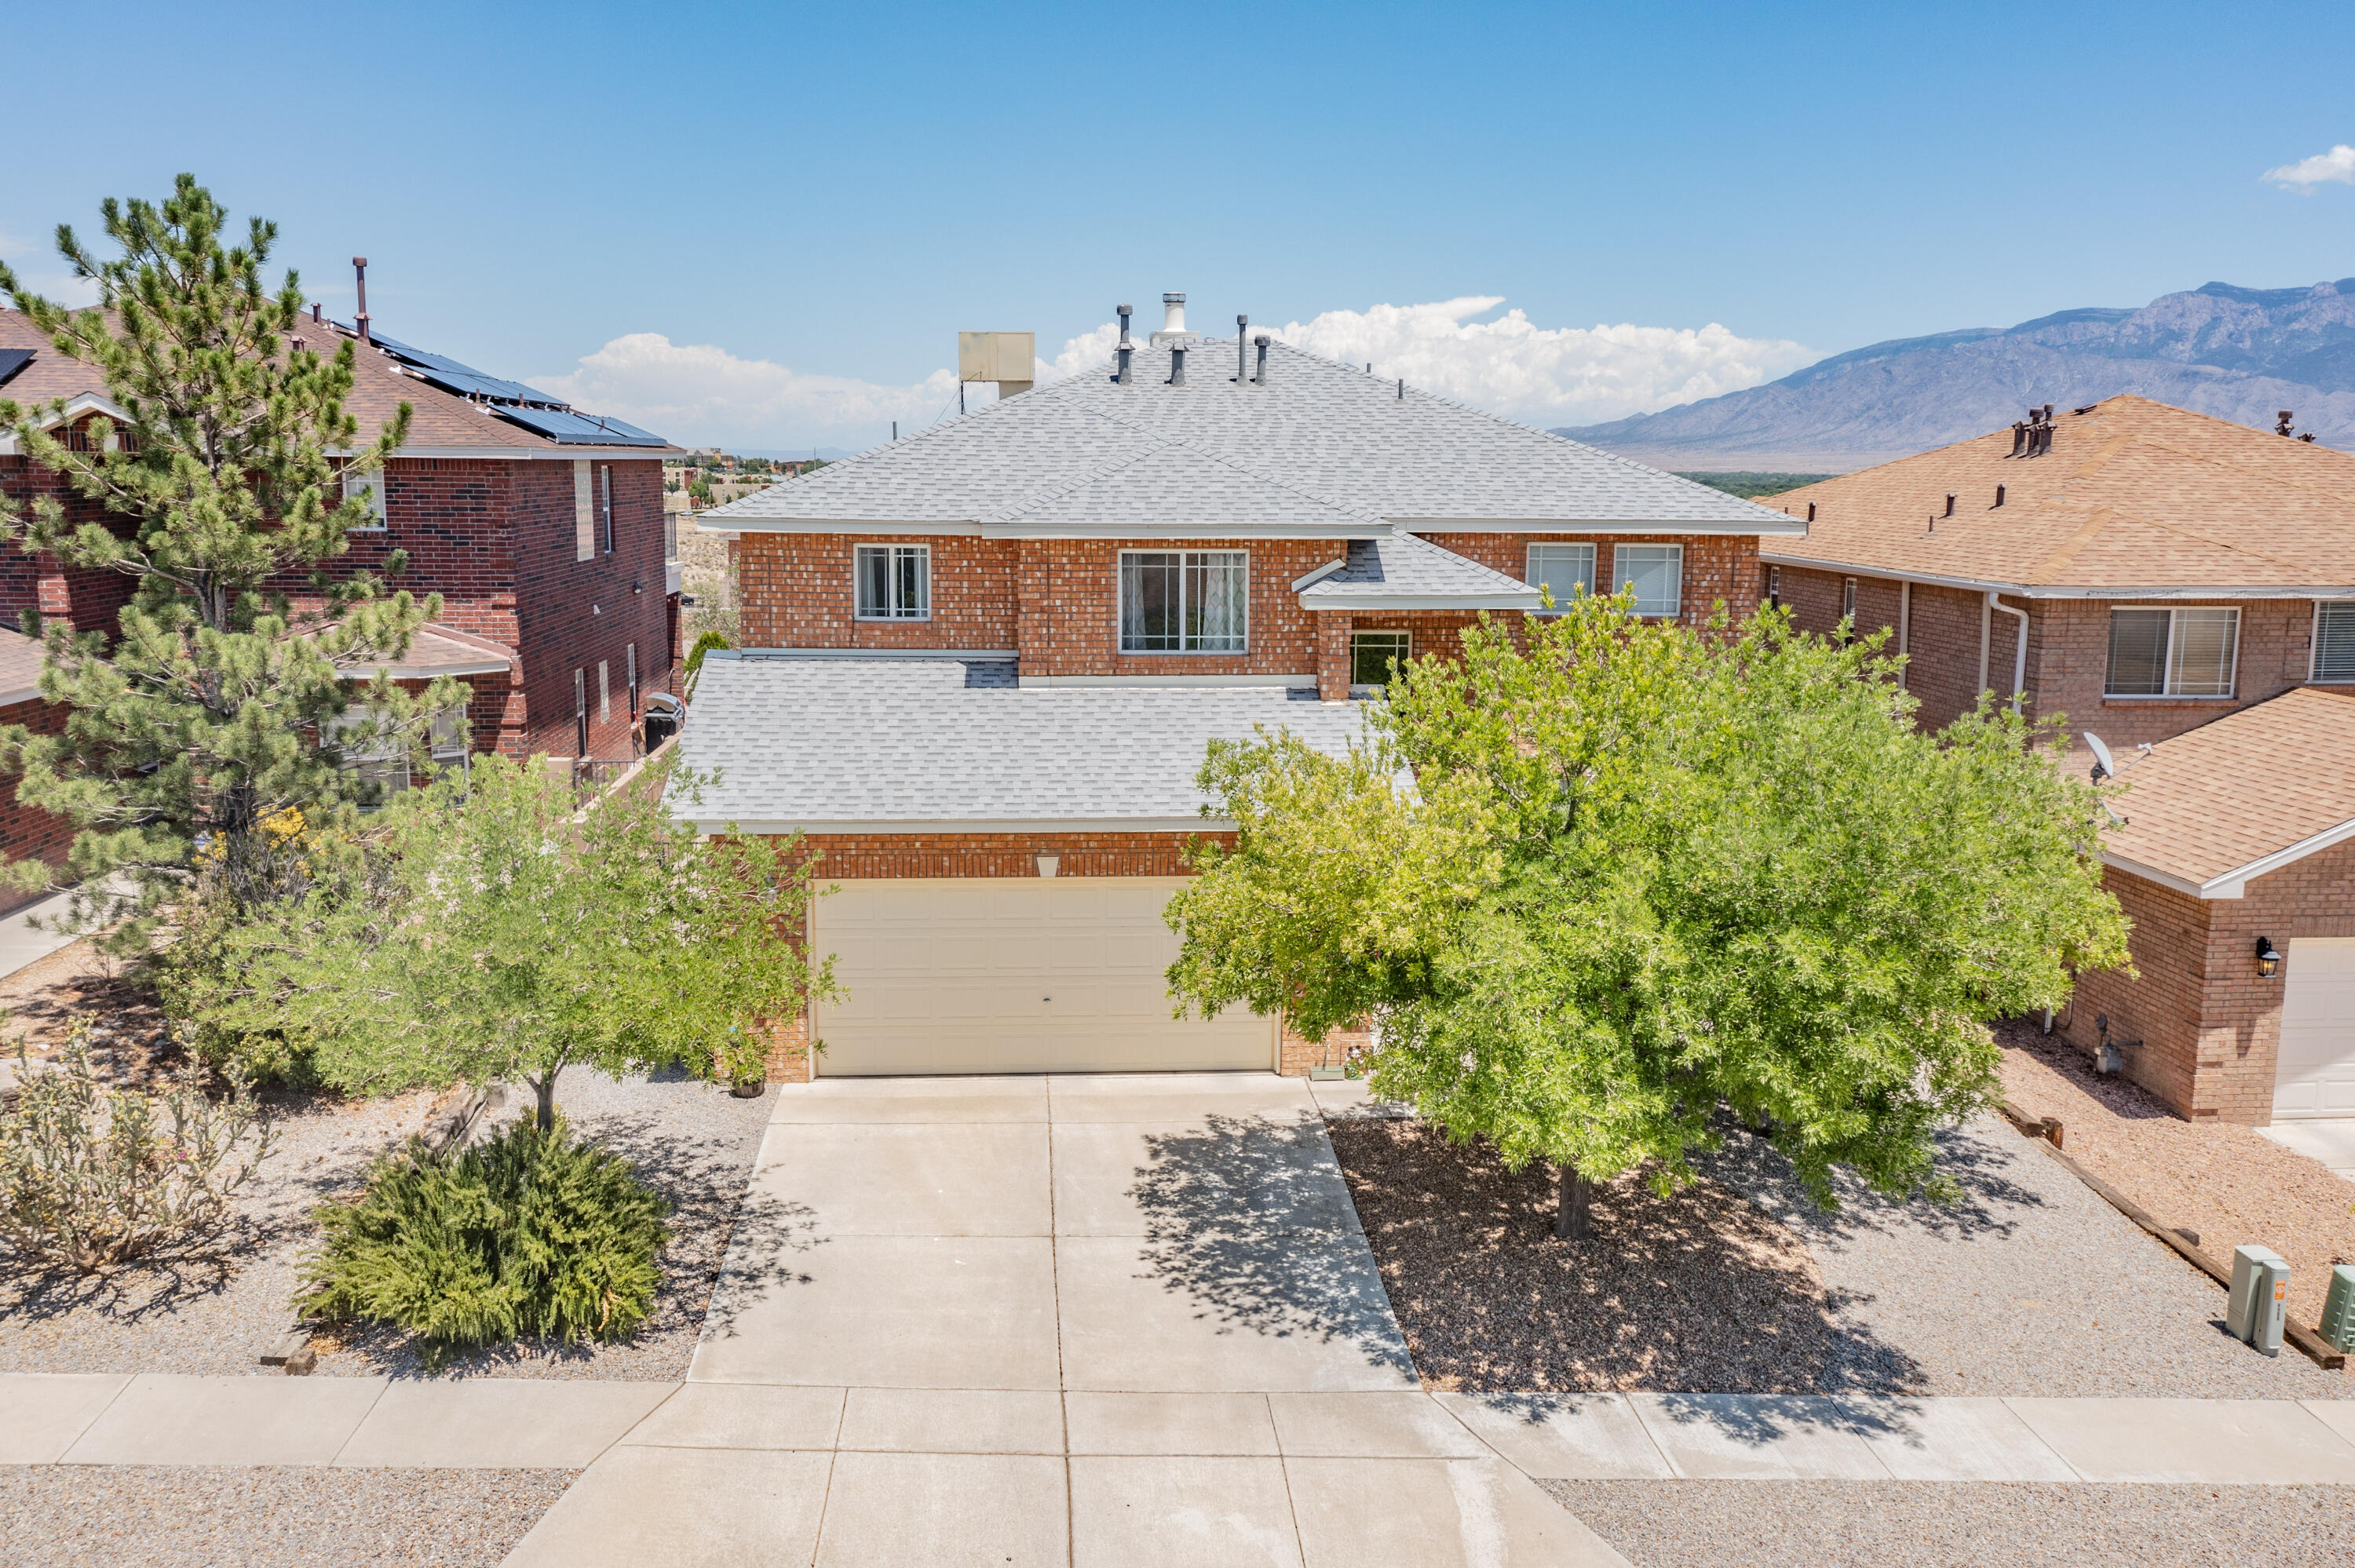 THIS is the Dream Home you've been waiting for! Stunning Remodeled Property w/Sweeping views of the City, Sandias & Valley! Avoid crowds & Enjoy Balloon Fiesta on your own private balcony! Gorgeous Wood Tile Downstairs & Top of the Line Carpet Upstairs. Light & Bright w/Sprawling Ceilings in Living Room w/Gas Fireplace and Open Kitchen w/Quartz Countertops, Massive Island w/Bar Seating & Double Ovens. Formal Dining Room w/Crown Molding, Office/5th Bedroom downstairs & Loft Upstairs. Tandem 2.5 Car Garage w/Large Storage Room that's Heated/Cooled. Impressive Primary Suite w/Oversized Ensuite Bath w/Jetted Tub & Enormous Walk-in Closet. Newer Roof 2019. Central Vac. Semi-Custom Stillbrooke Home. Fully Landscaped on .21 Acre. Convenient to Paseo for a quick commute to the East Side.